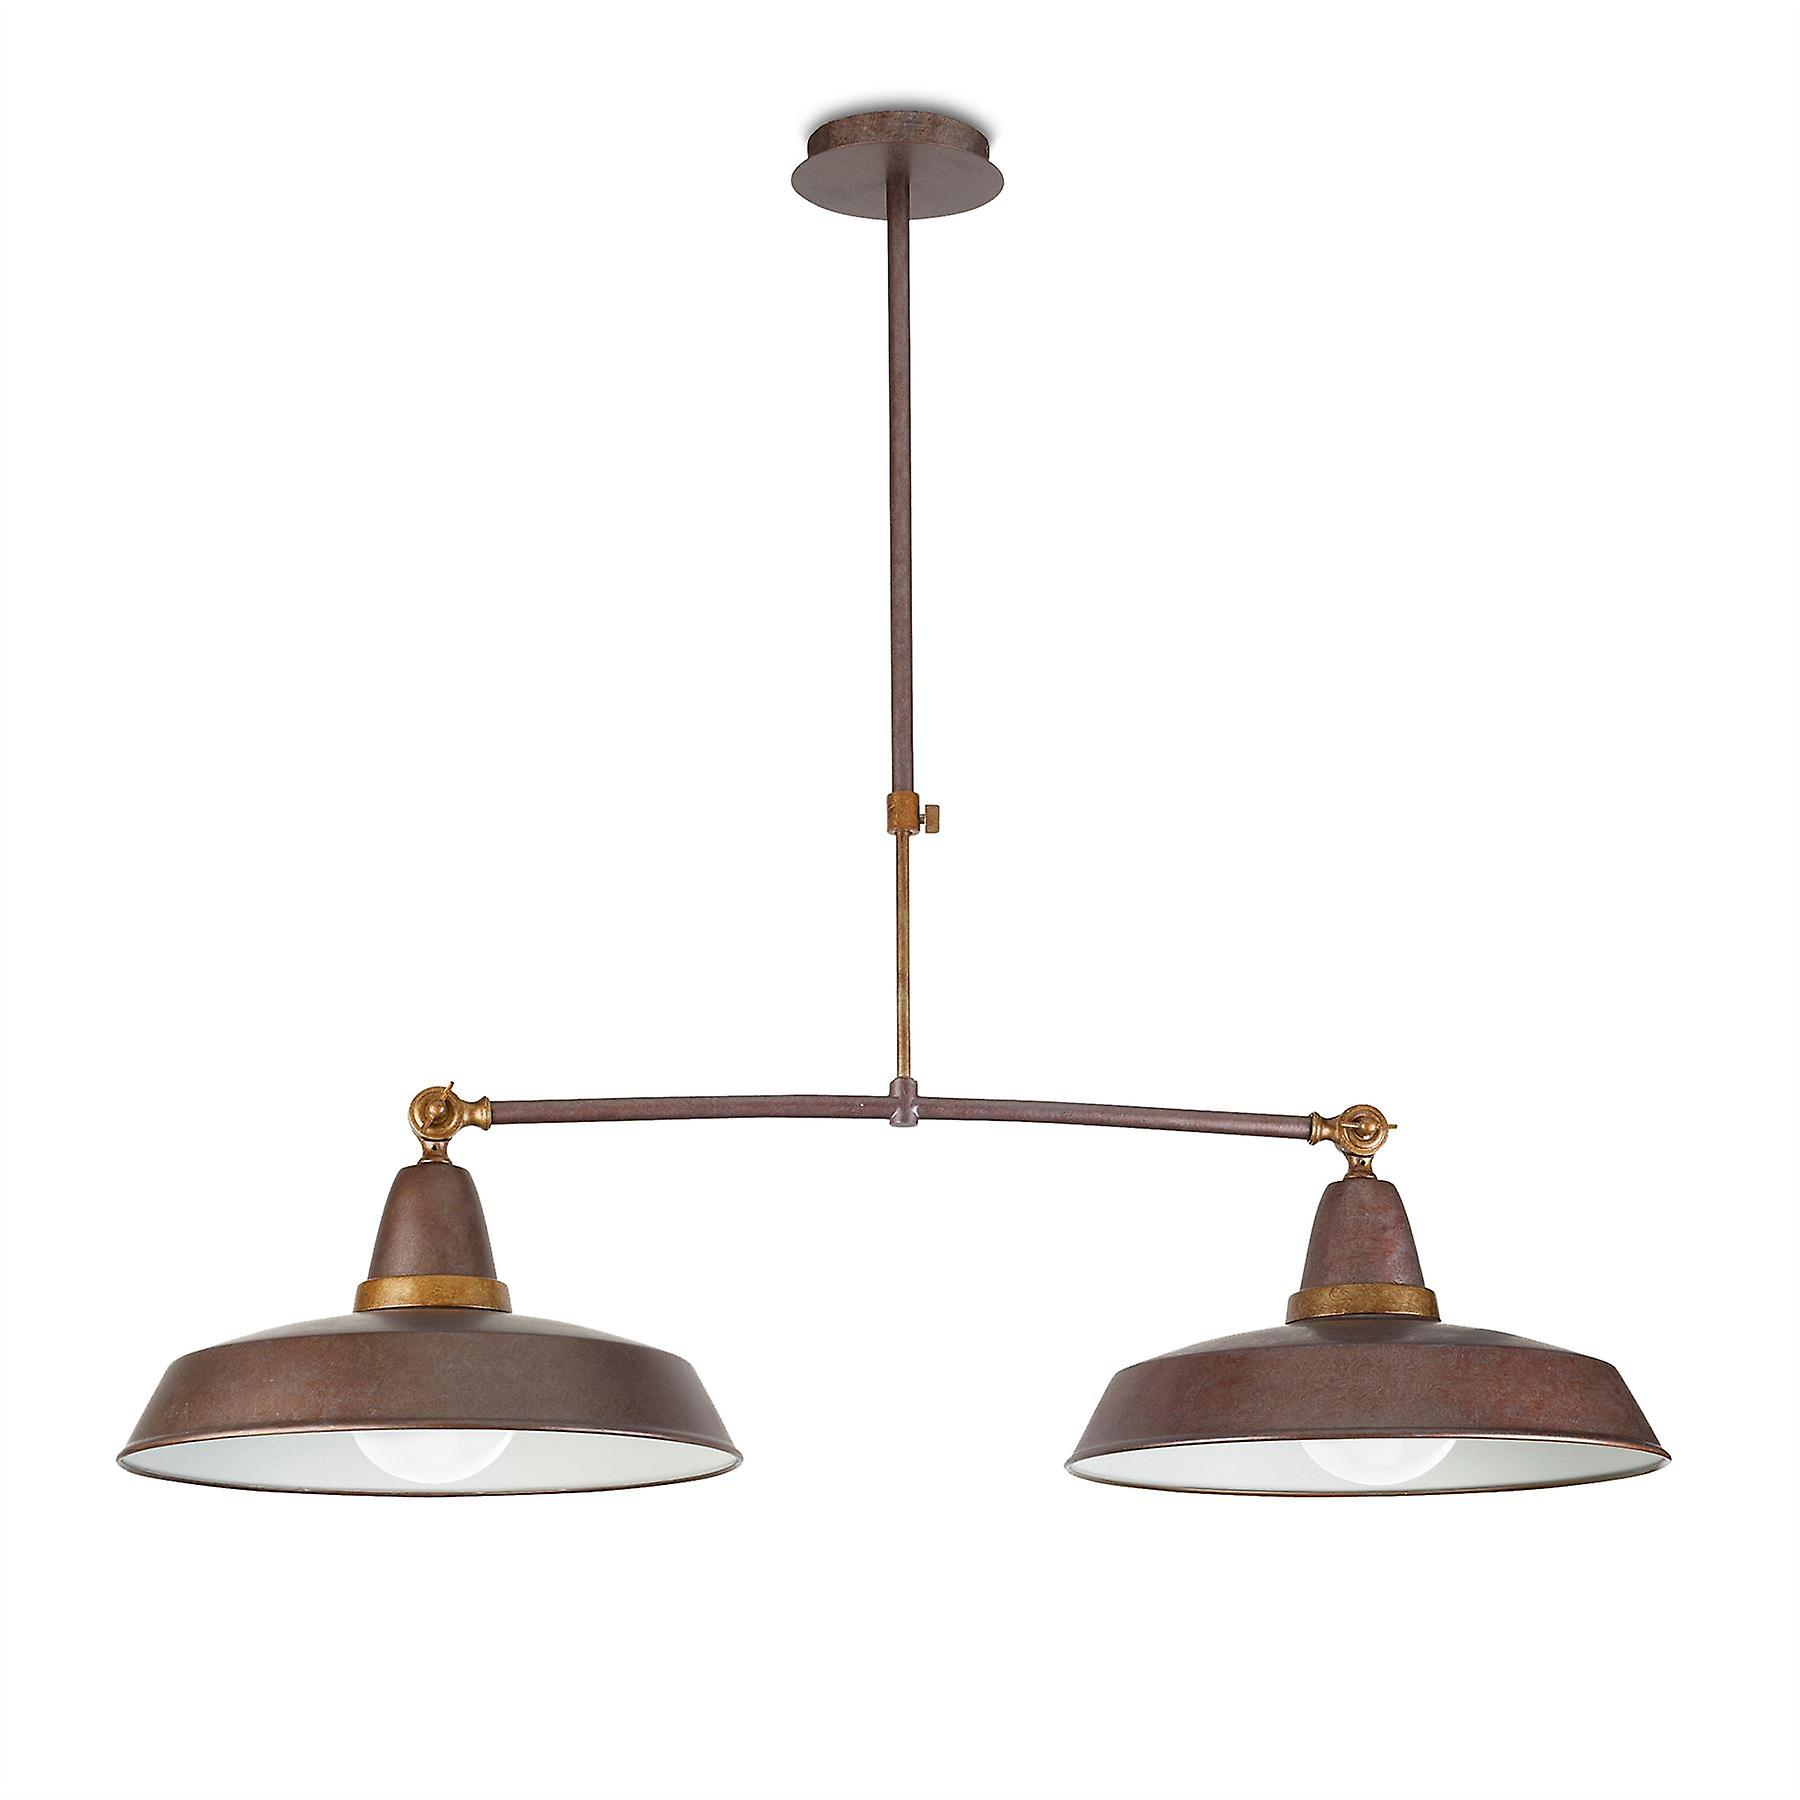 Vintage marron Adjustable Double Ceiling Pendant - Leds-C4 00-2011-S4-CG